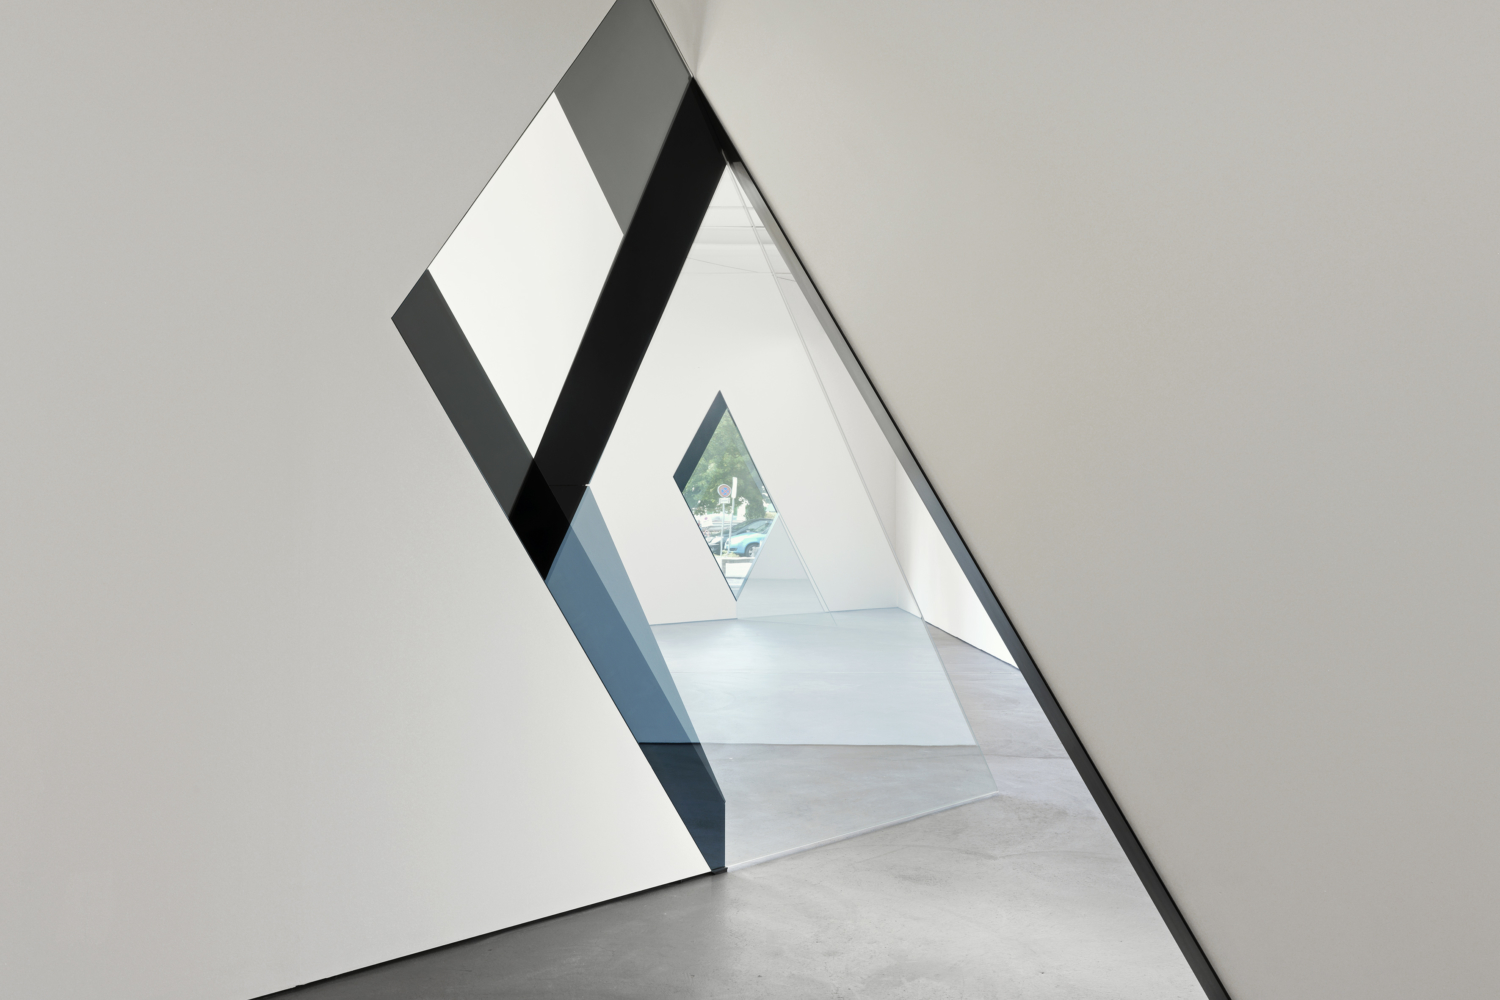 Royalty-free images to be used exclusively for press on Mudam